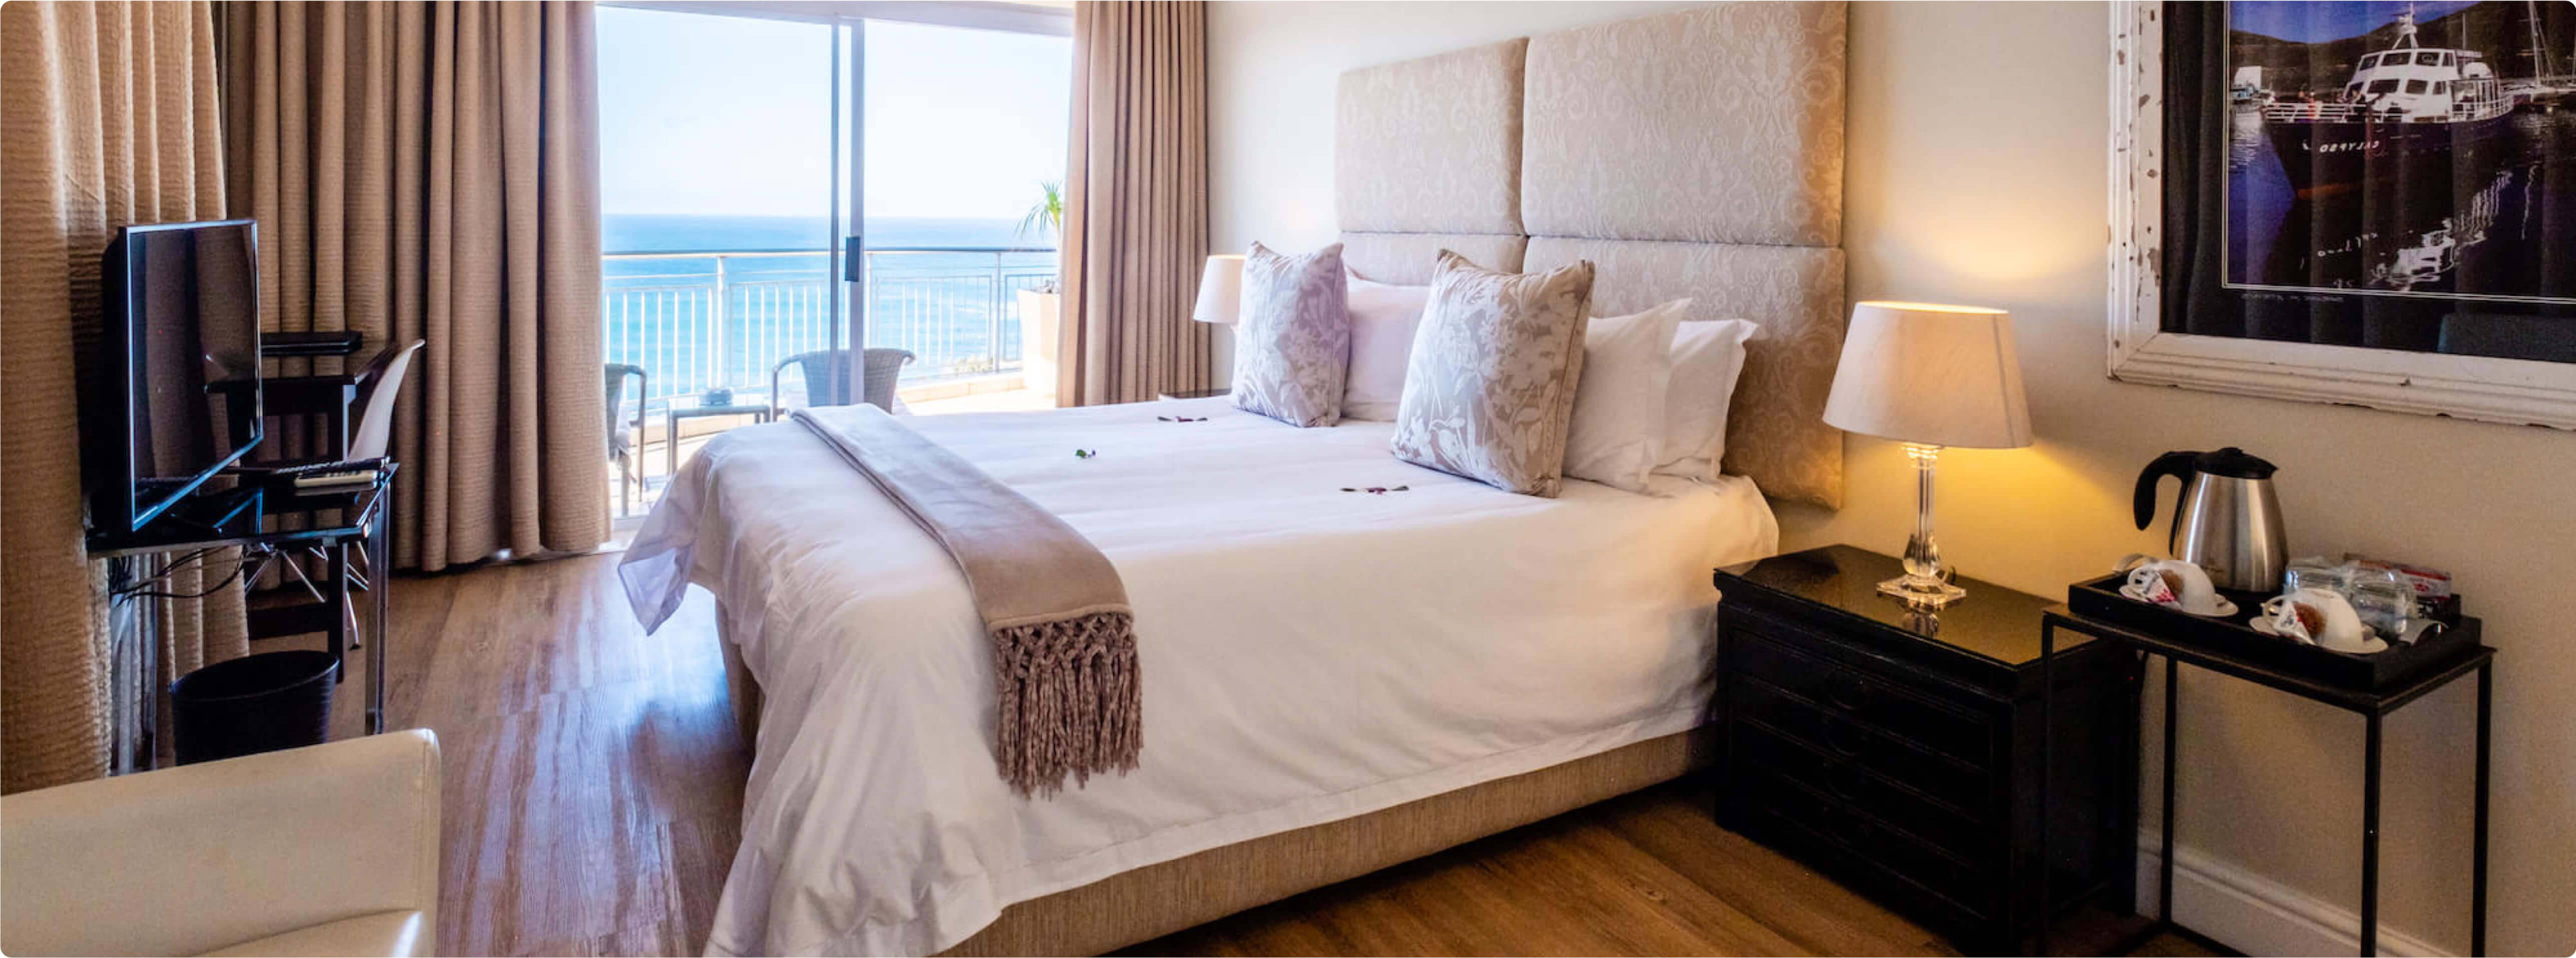 3 On Camps Bay - Luxury Room